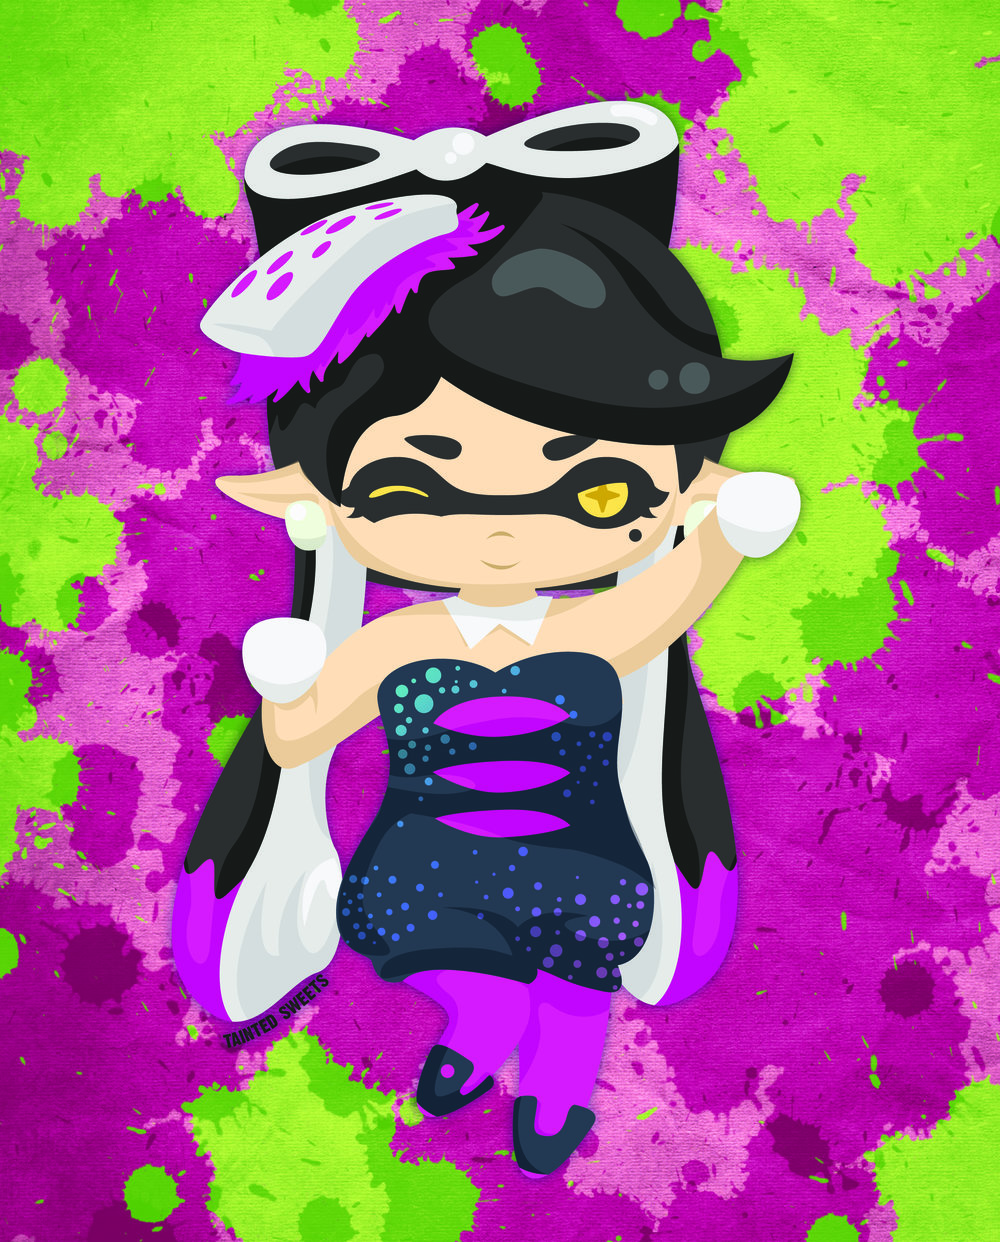 splatoon_8x10.jpg